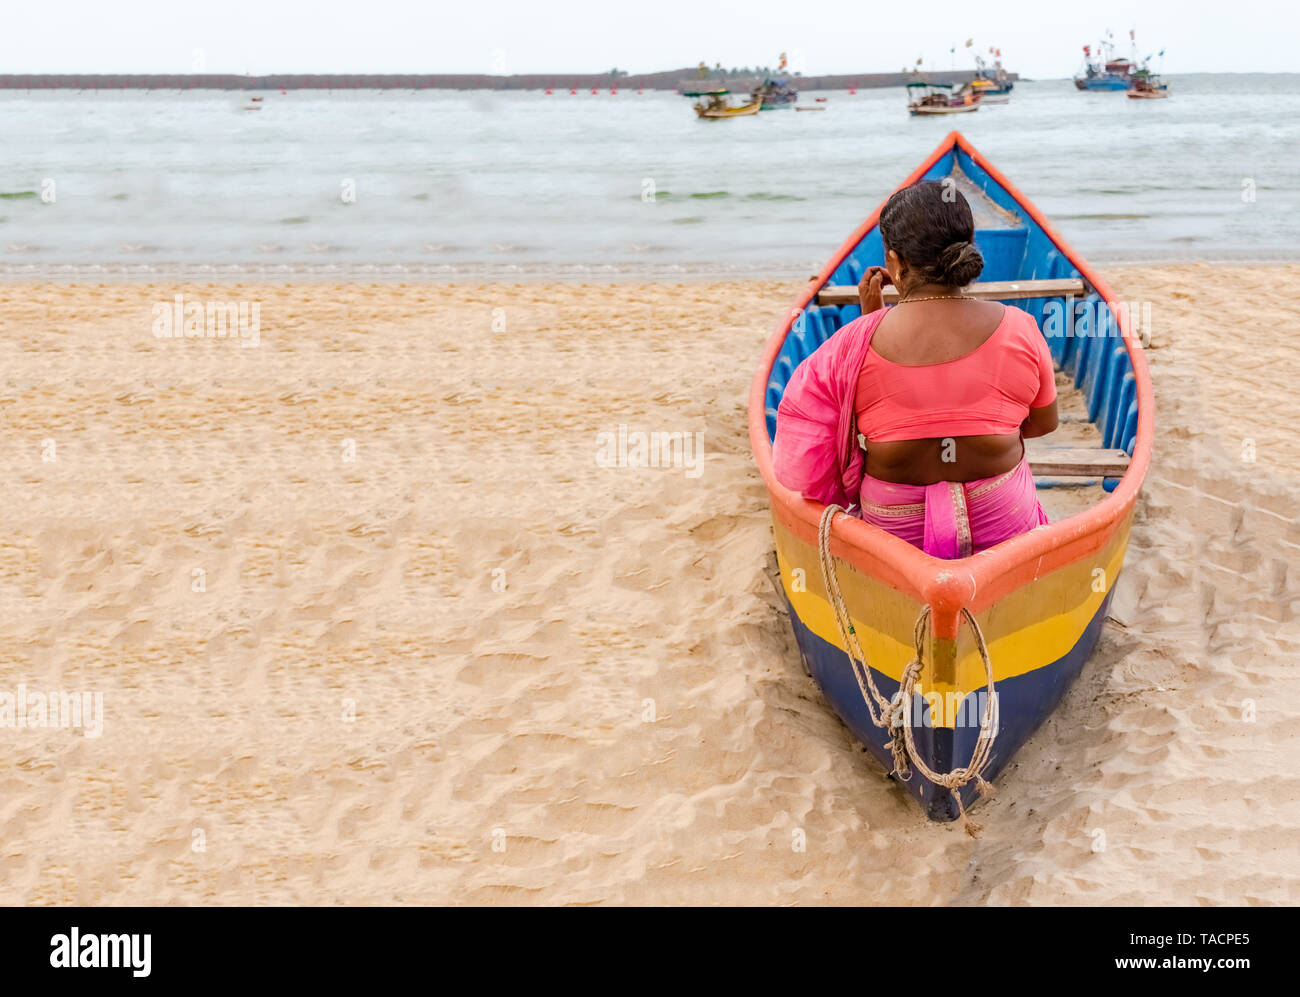 Indian Woman, wearing Ethnic Saree in Marathi style, waiting in colorful canoe, for her husband to return from fishing. Space in left for writing text - Stock Image